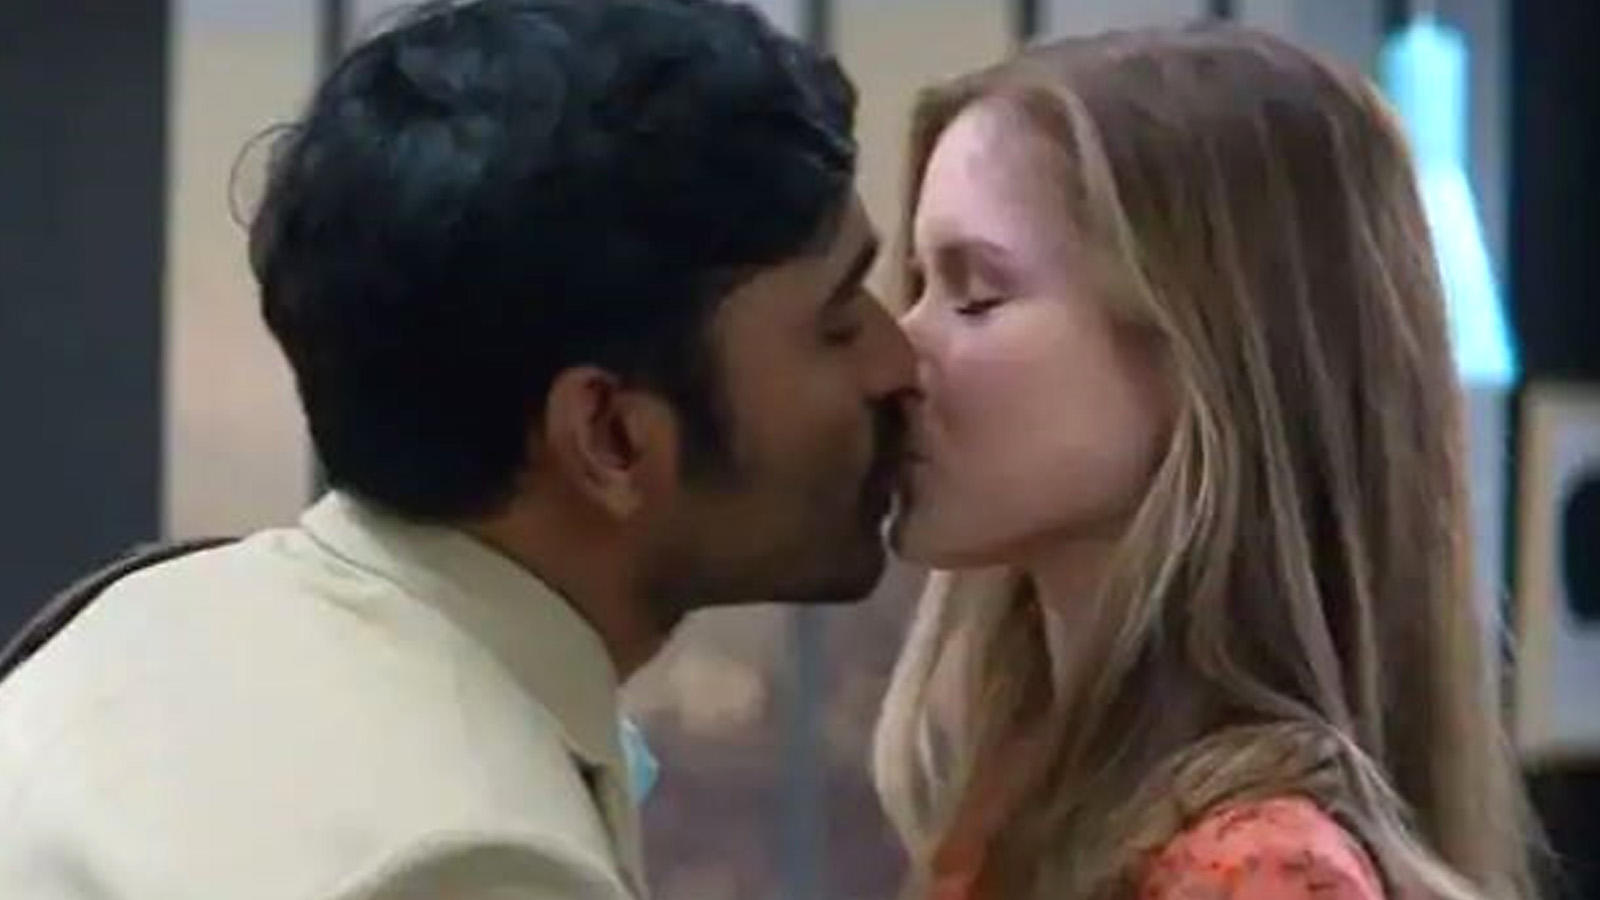 dhanush-on-fans-reactions-to-his-lip-lock-scene-in-the-extraordinary-journey-of-the-fakir